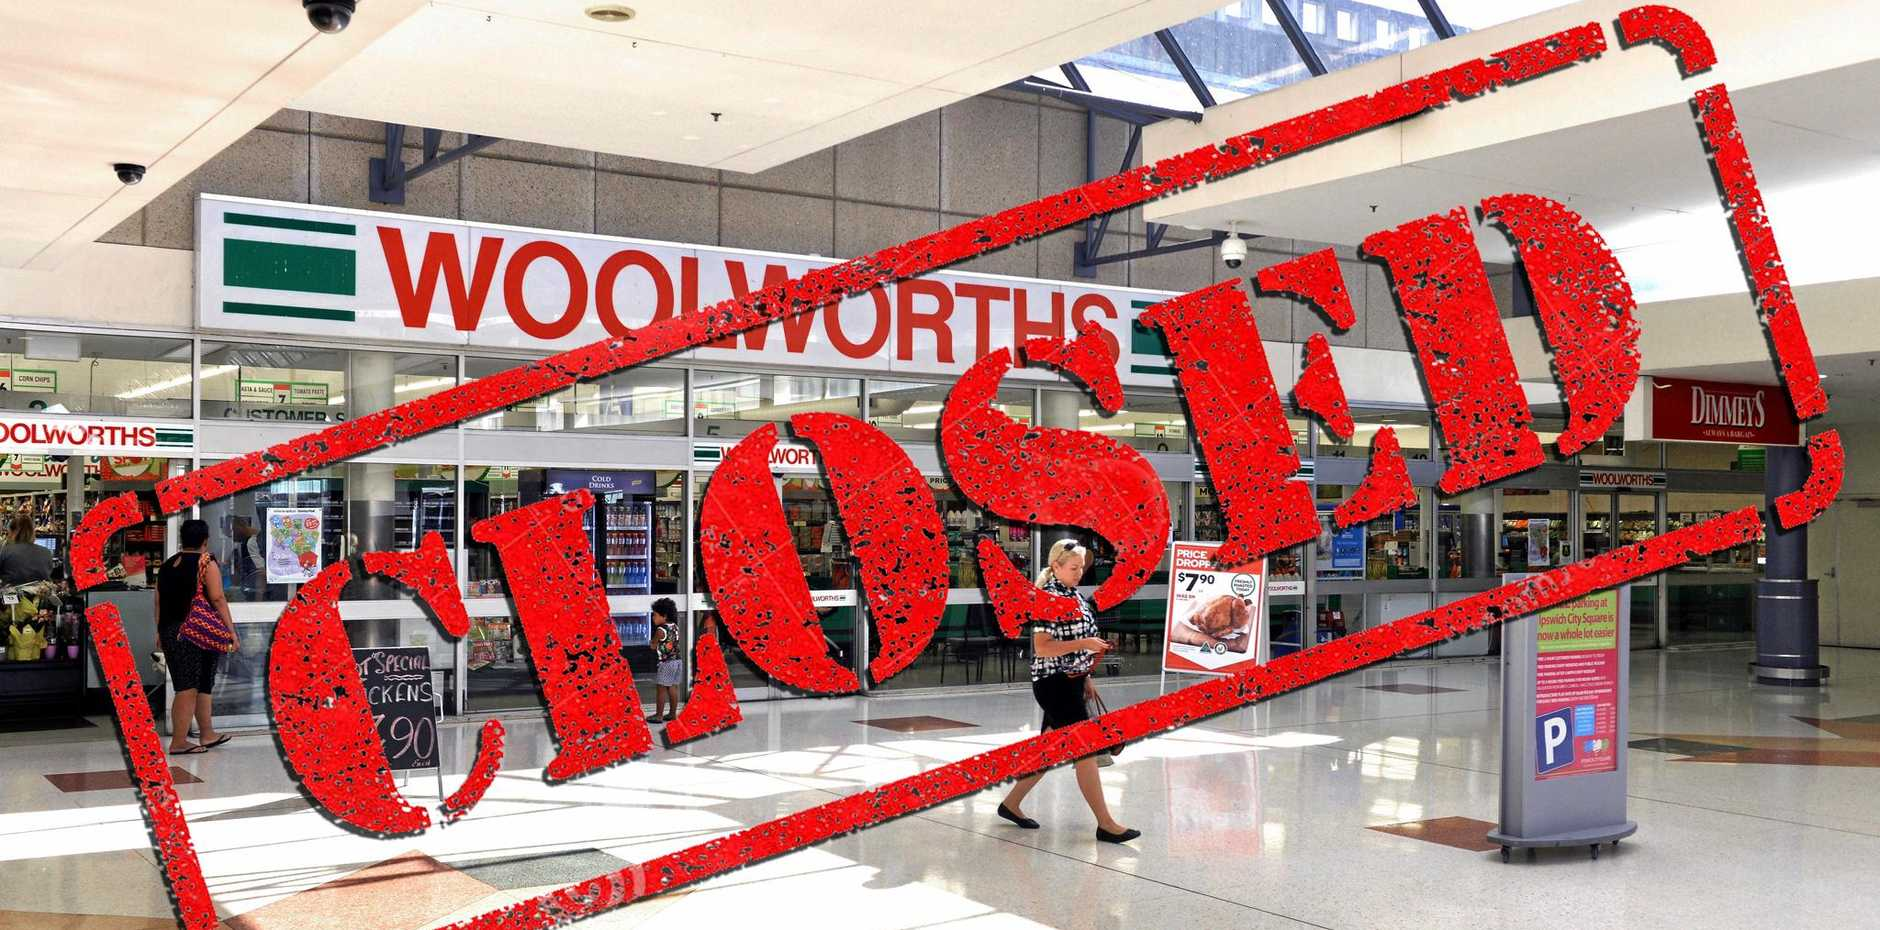 GOOD OR BAD CHOICE? Woolworths is closing in the Ipswich Mall. Some say this will make way for more entertainment options.